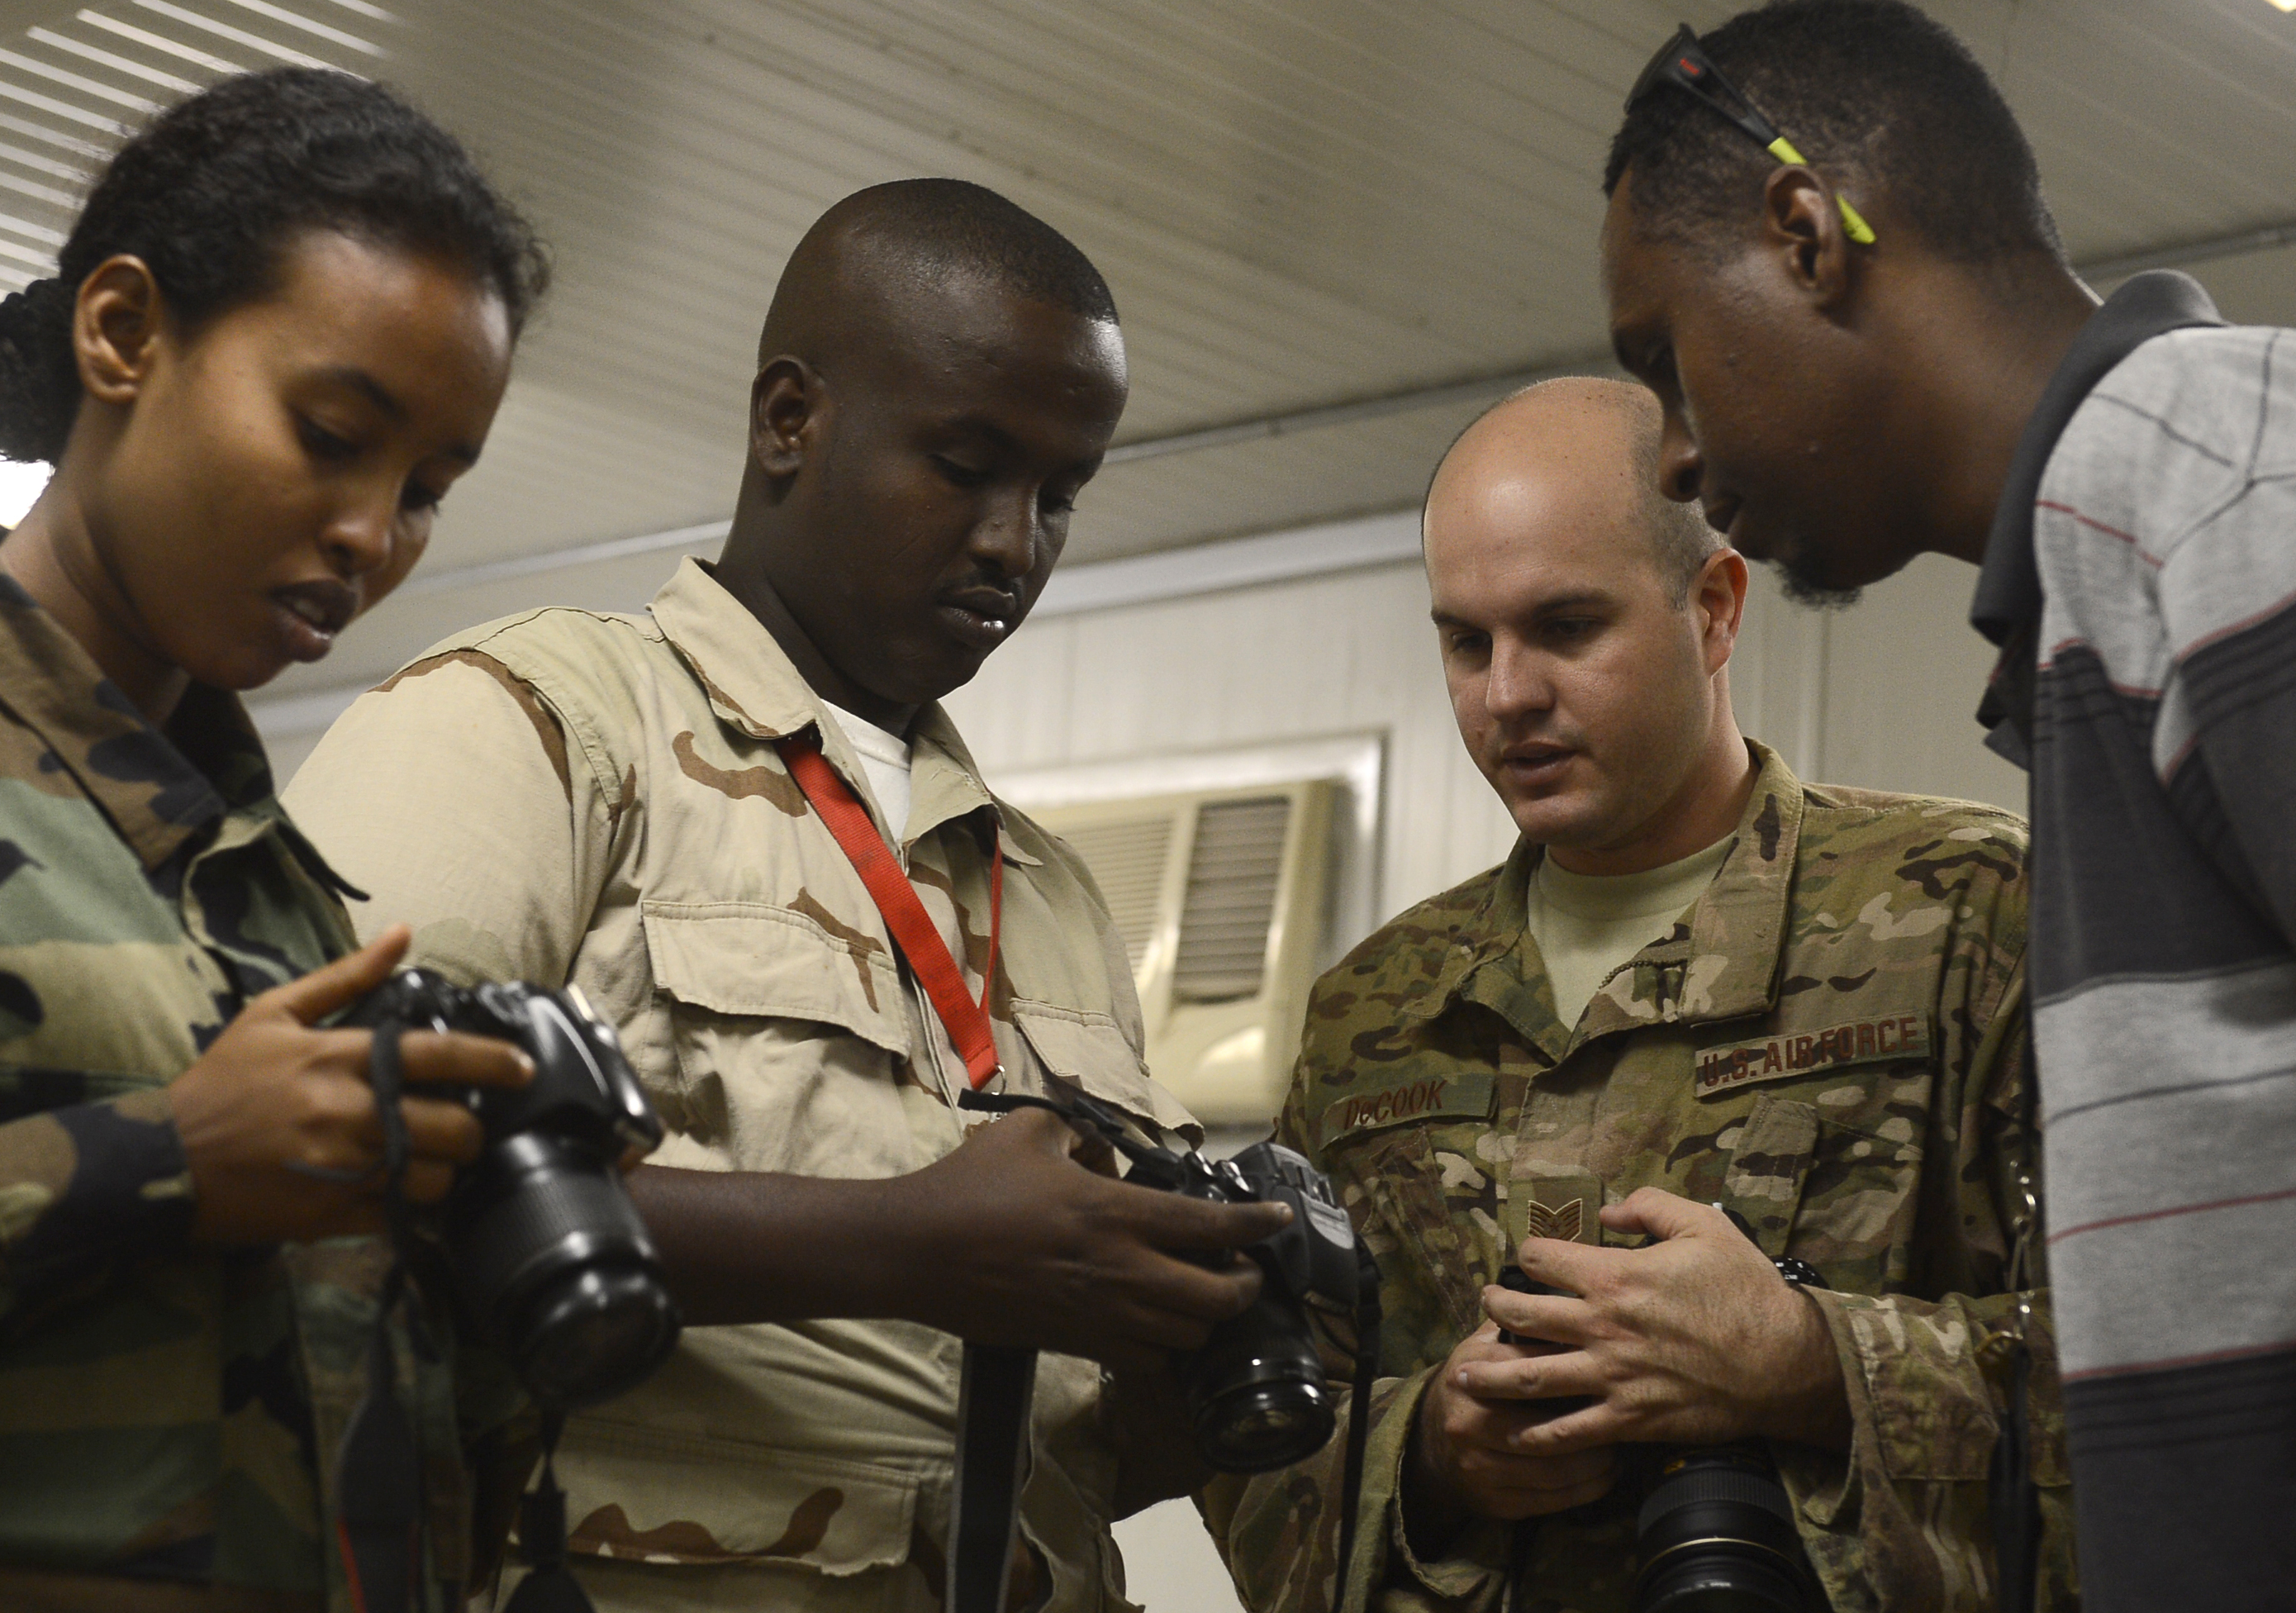 Members of the Djibouti Armed Forces (FAD) discuss their camera settings and capabilities with Tech. Sgt. Daniel DeCook, Combined Joint Task Force-Horn of Africa photojournalism NCOIC, Dec. 2, 2015, at Camp Lemonnier, Djibouti. The Combined Joint Task Force-Horn of Africa Public Affairs Office worked with eight FAD members to improve their understanding of photo and video techniques and equipment to help improve the FAD's ability to document and share the FAD's mission with the public. (U.S. Air Force photo by Senior Airman Peter Thompson)